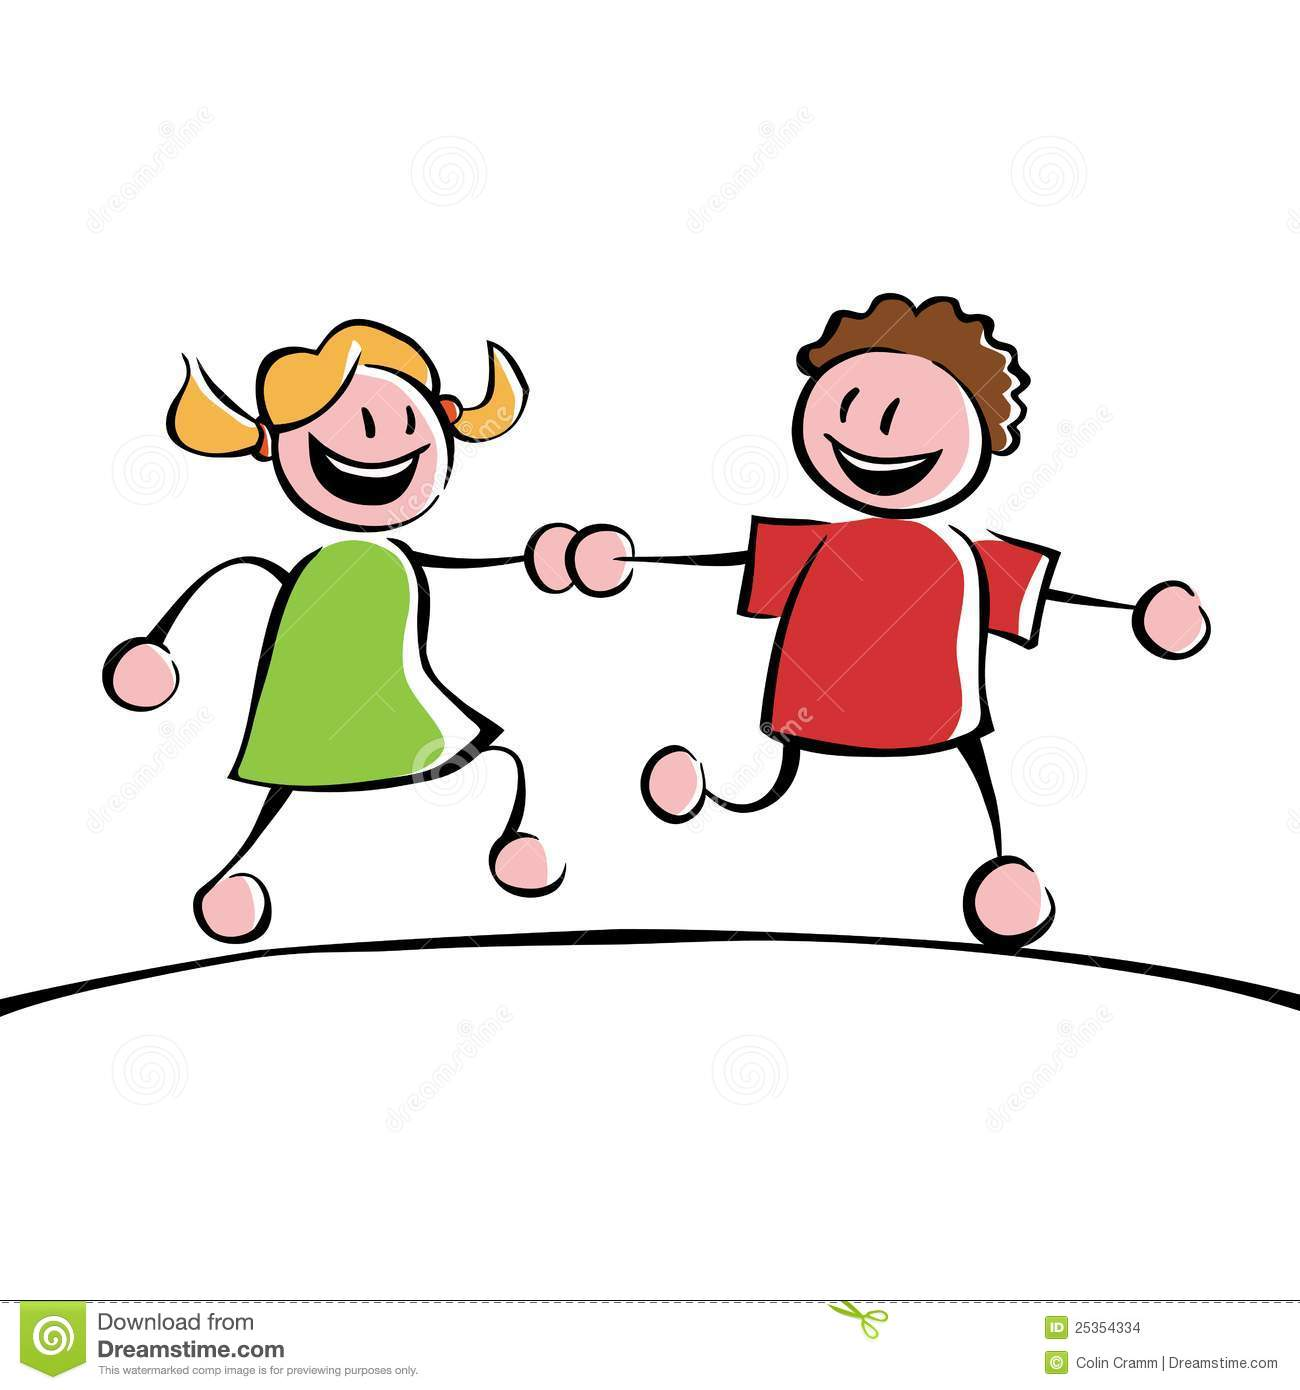 two kids holding hands clipart panda free clipart images rh clipartpanda com group holding hands clipart holding hands clipart png